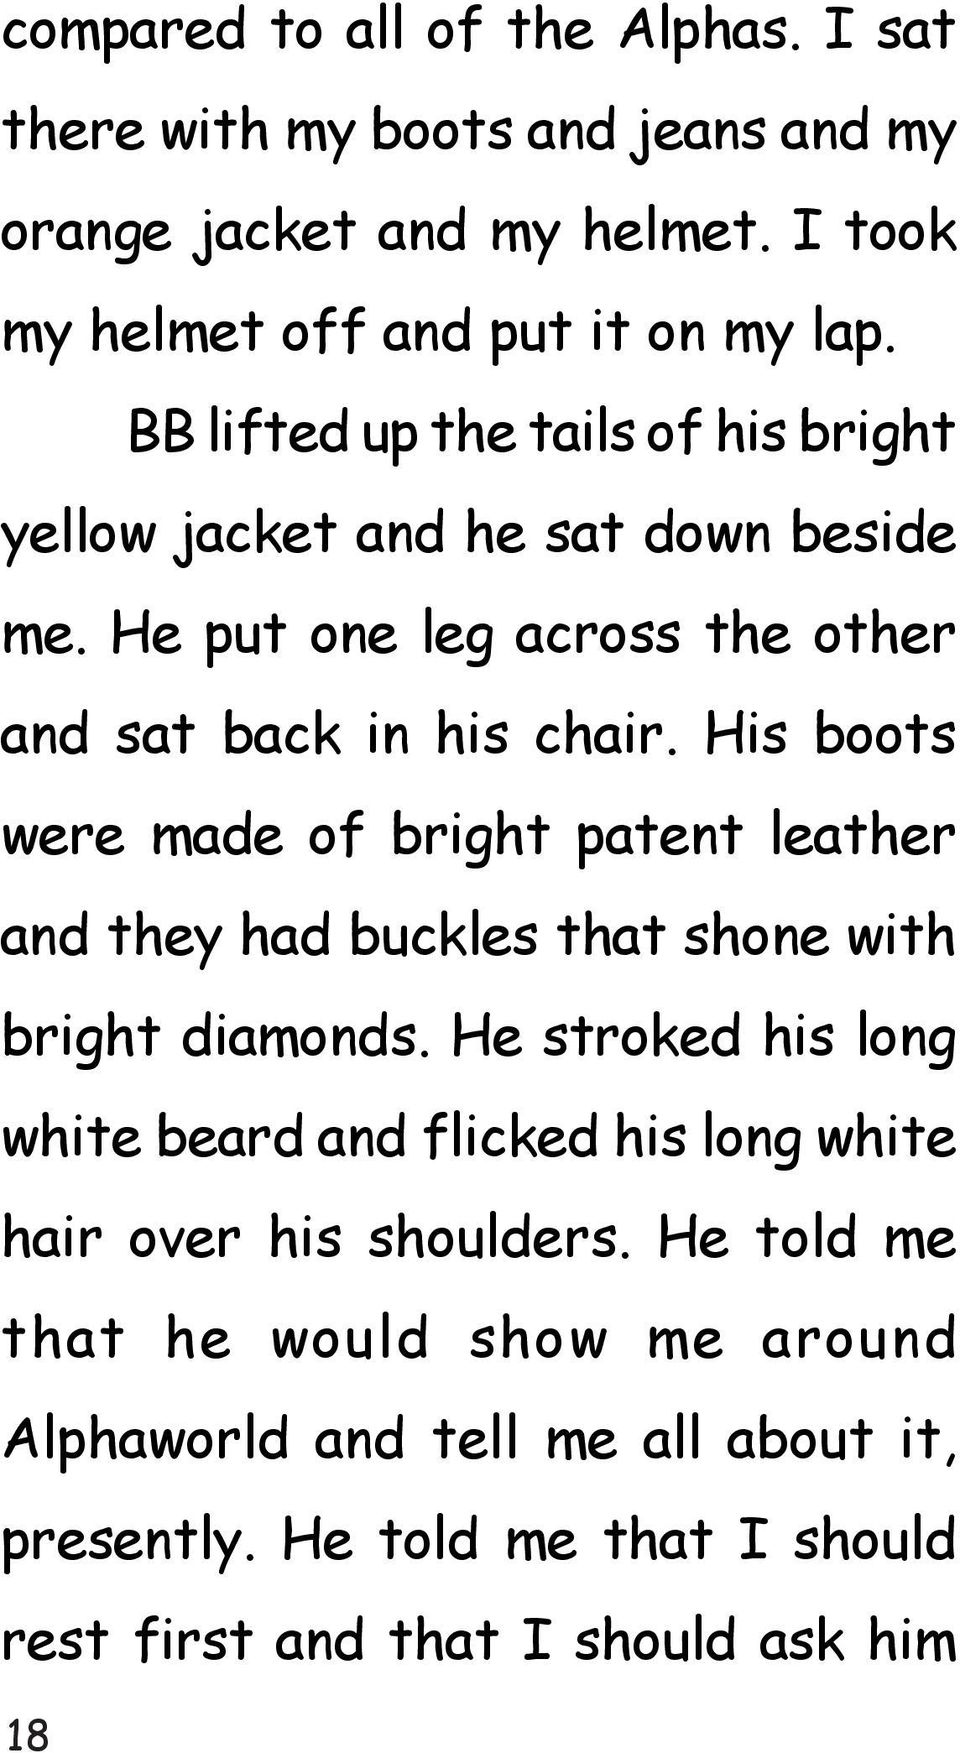 His boots were made of bright patent leather and they had buckles that shone with bright diamonds.